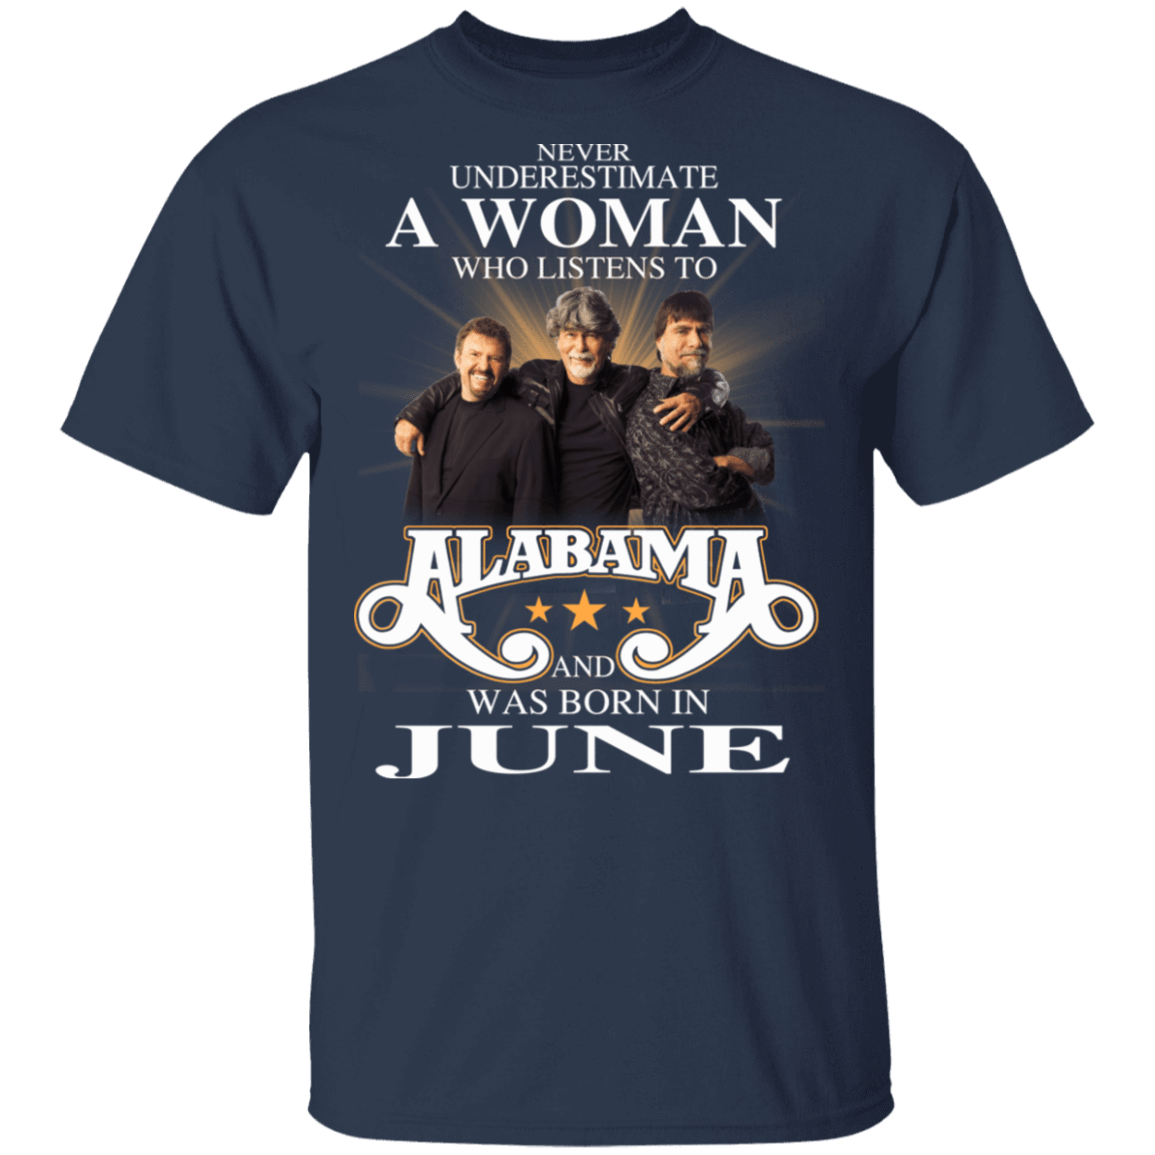 A Woman Who Listens To Alabama And Was Born In June T-Shirts, Hoodies, Tank 1049-9966-81138105-48248 - Tee Ript